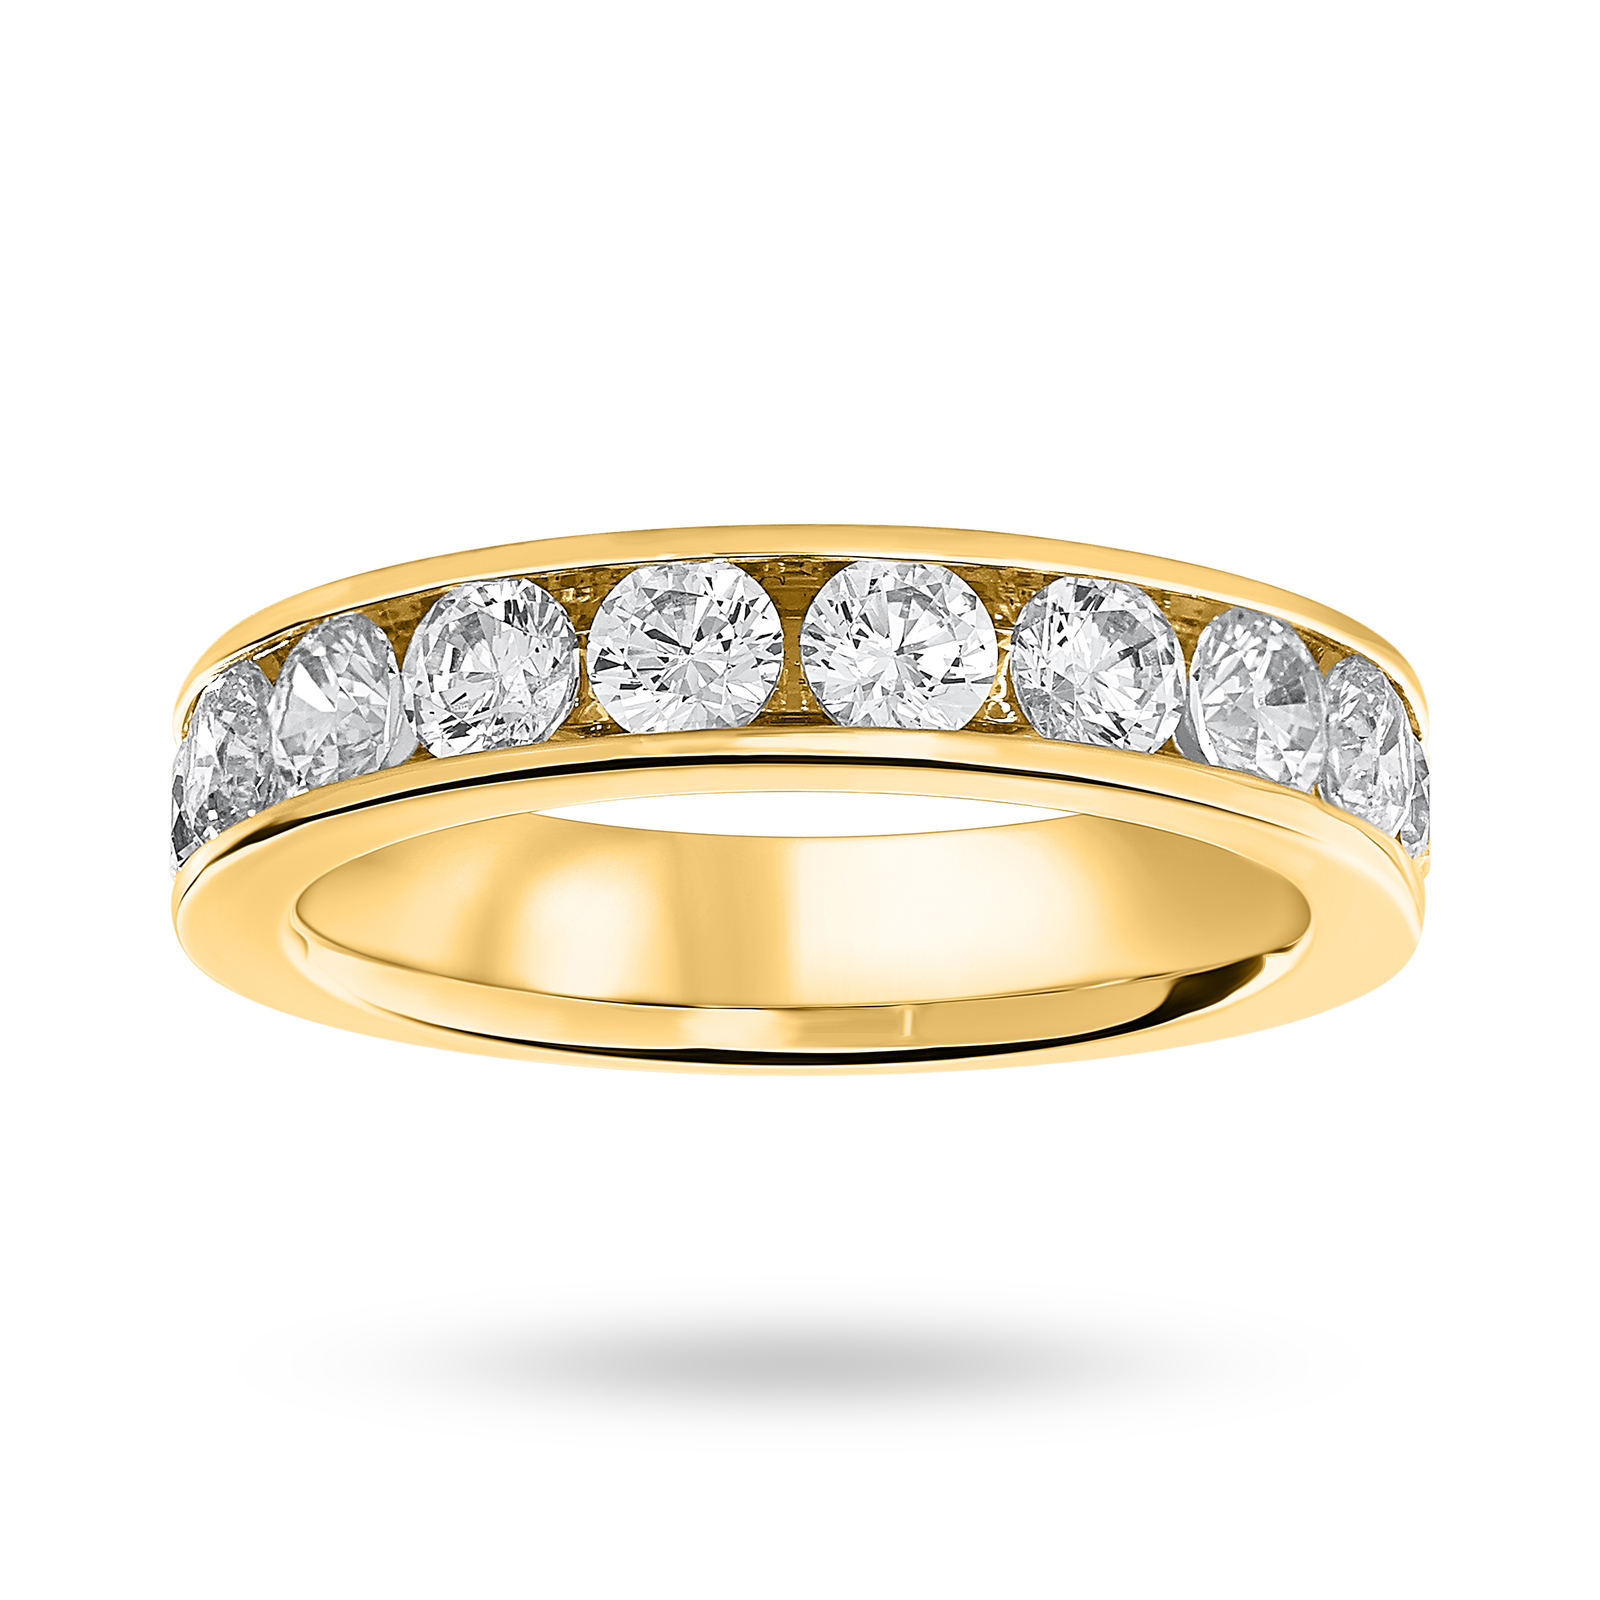 9 Carat Yellow Gold 1.50 Carat Brilliant Cut Half Eternity Ring